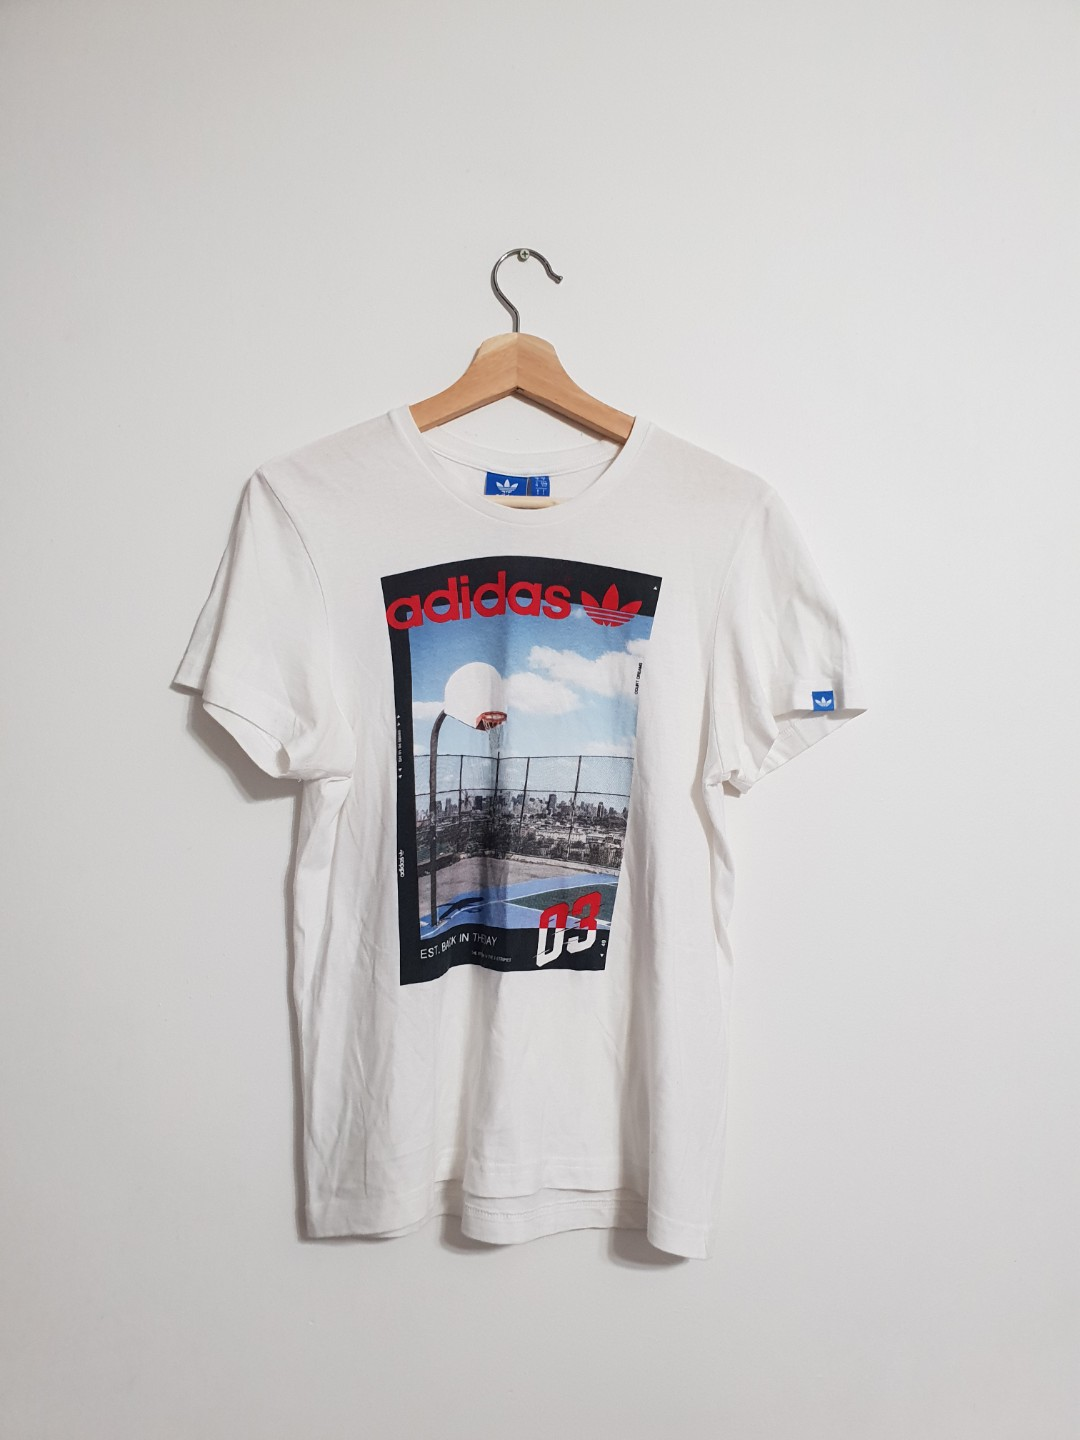 042a6cd3a73 Vintage 2003 Adidas Tee, Men's Fashion, Clothes, Tops on Carousell